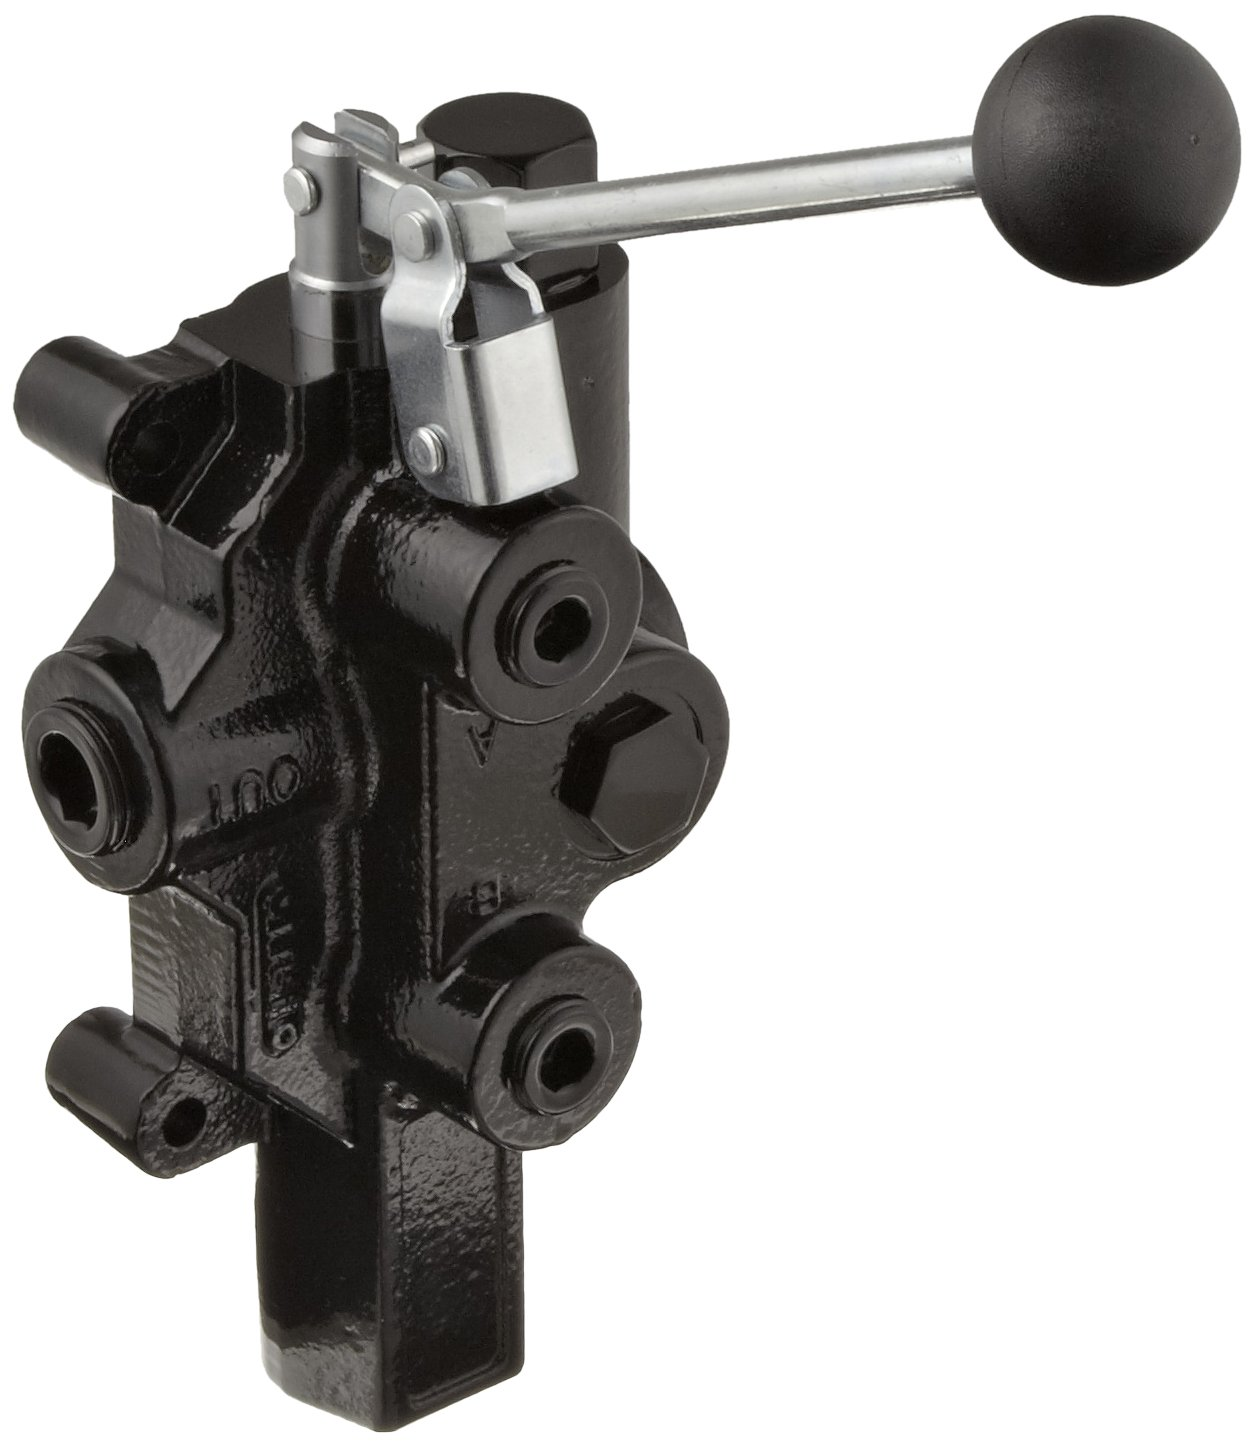 Prince RD-2575-T4-ESA1 Directional Control Valve, Logsplitter, 4 Ways, 3 Positions, Spring Center To Neutral, Cast Iron, 3000 psi, Lever Handle, 20 gpm, In/Out: 3/4'' NPTF, Work 1/2'' NPTF